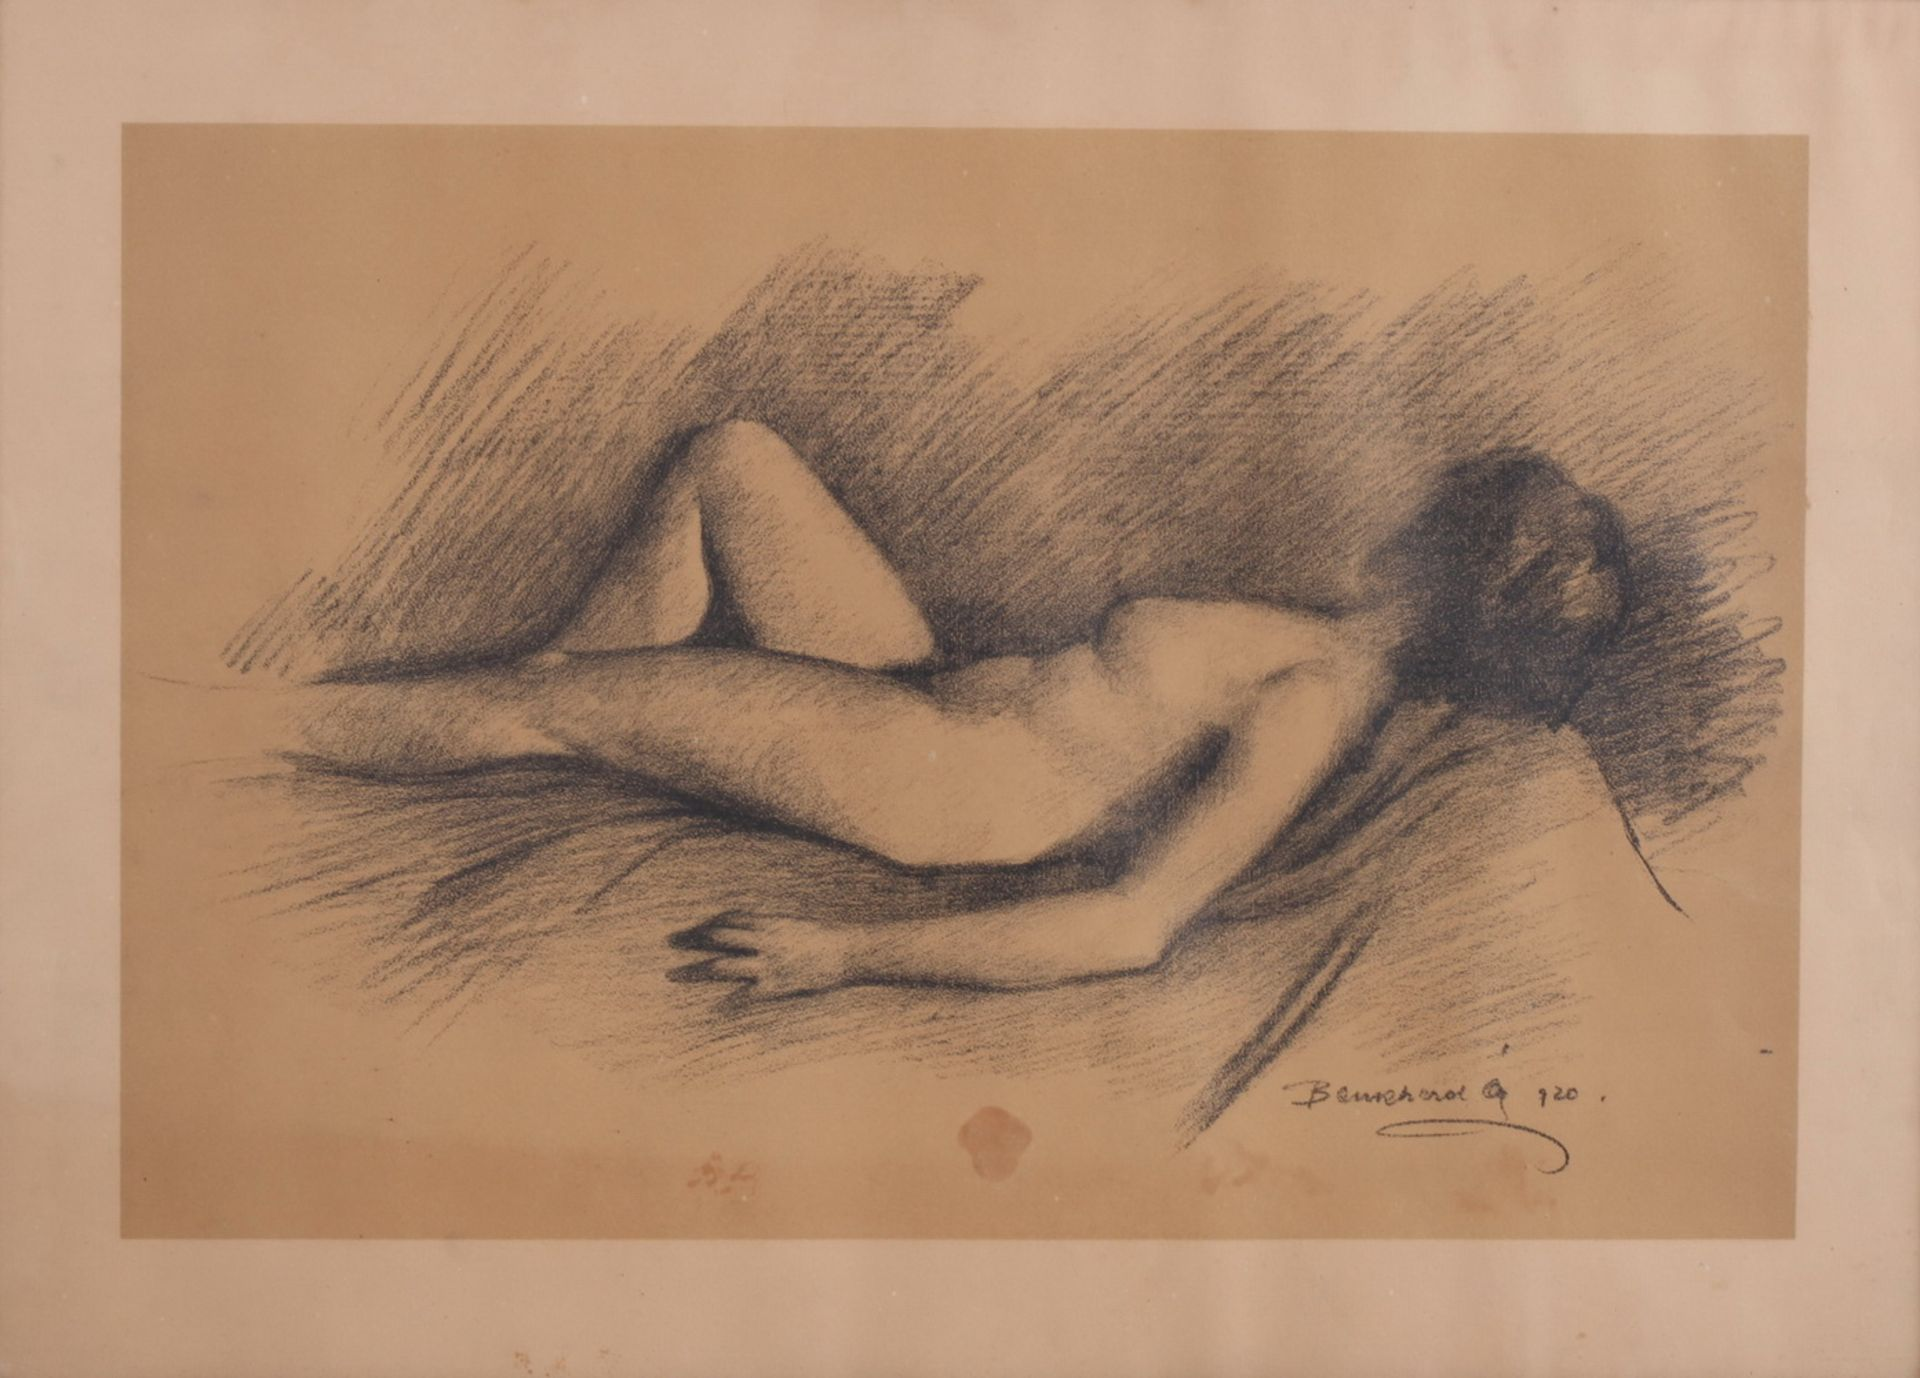 Unknown artist. Lying nude. <br>Signed and framed.1920. Paper, charcoal-pencil. 42,5x58,5 cm.